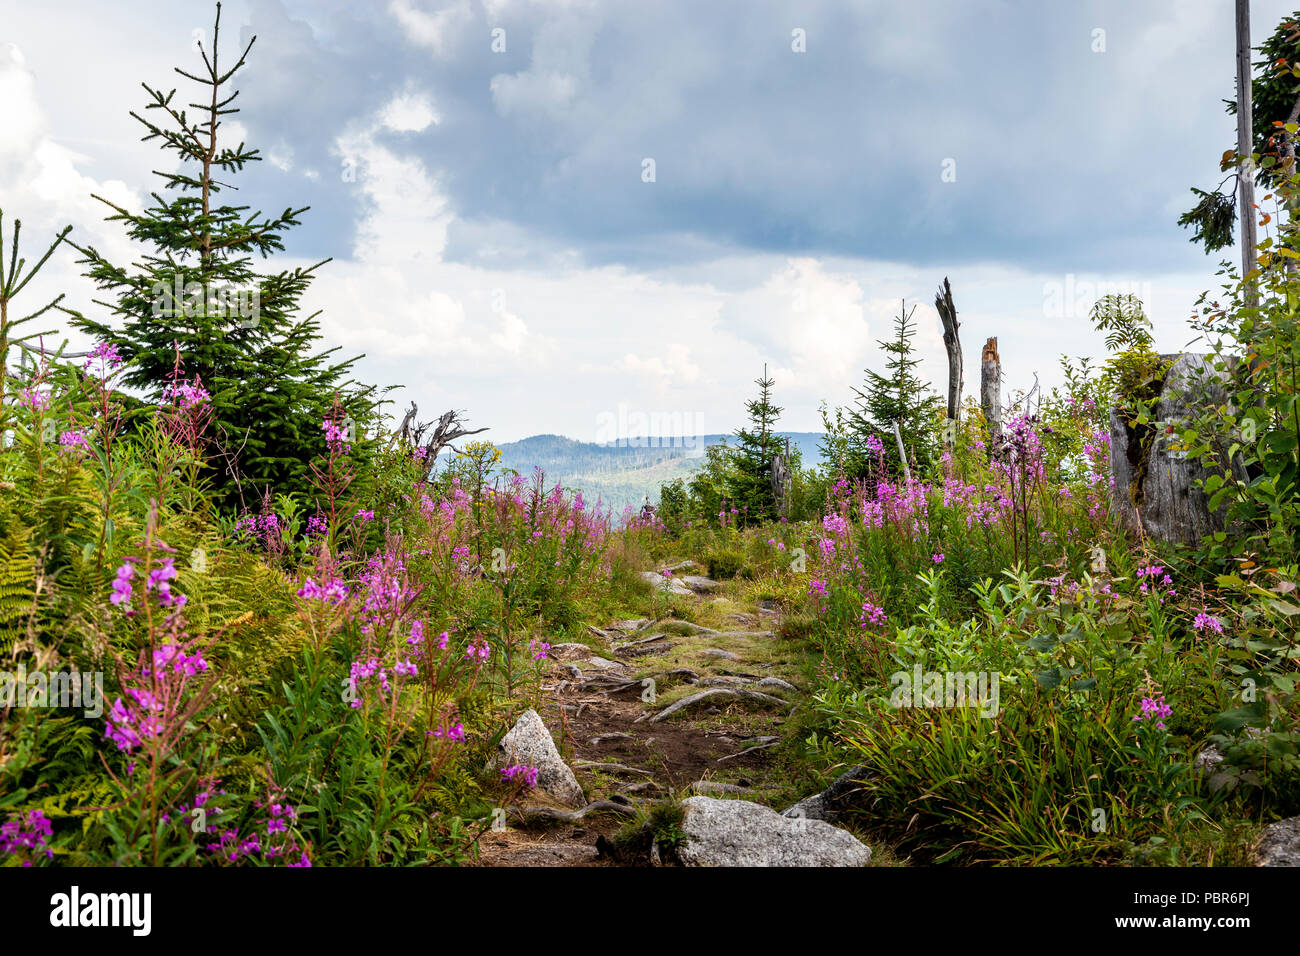 View to Dreisessel, Trojmezi and Trojmezna hills with forests destroyed by bark beetle infestation (calamity) in Sumava mountains. - Stock Image